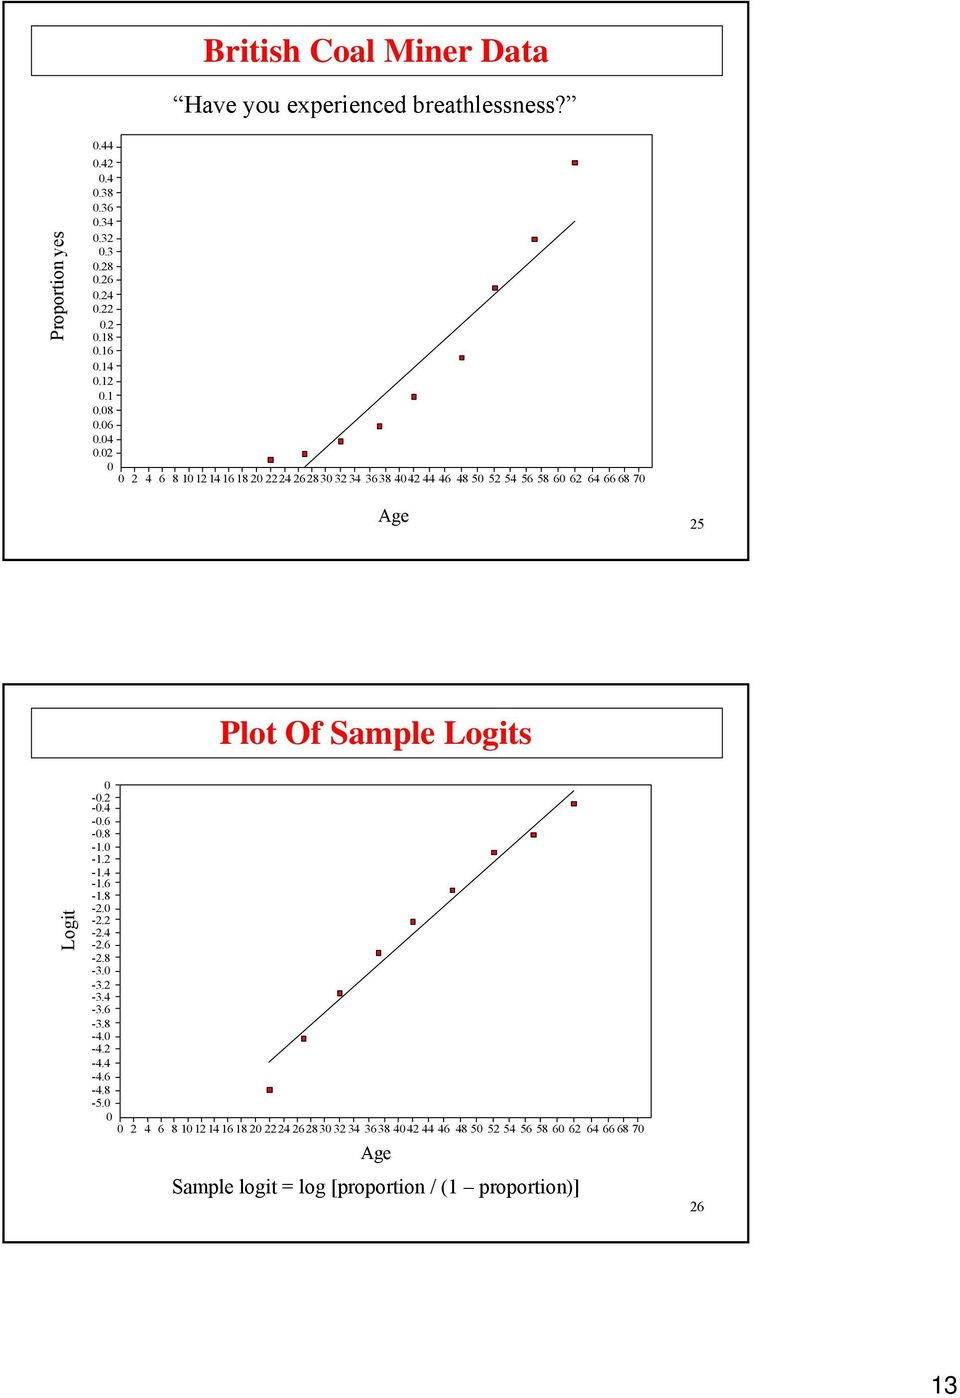 62 64 66 68 7 Age 25 Plot Of Sample Logits Logit -.2 -.4 -.6 -.8 -. -.2 -.4 -.6 -.8-2. -2.2-2.4-2.6-2.8-3. -3.2-3.4-3.